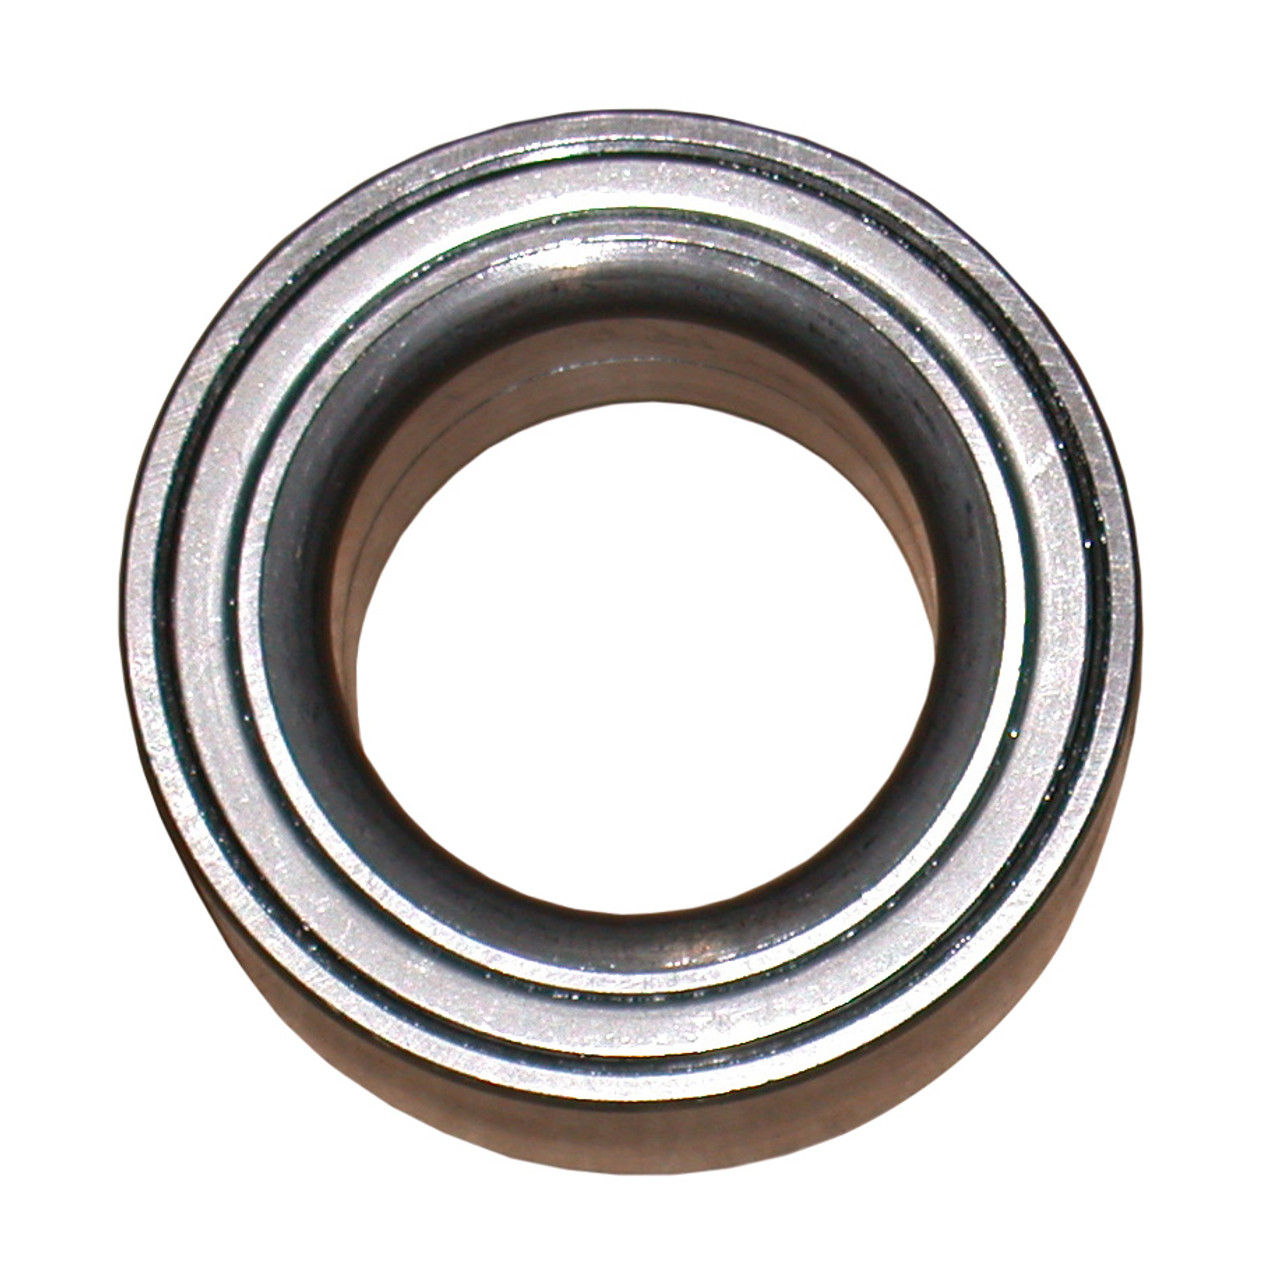 31-71 --- Dexter Nev'r Lube Bearing Cartridge - 50 mm Bore